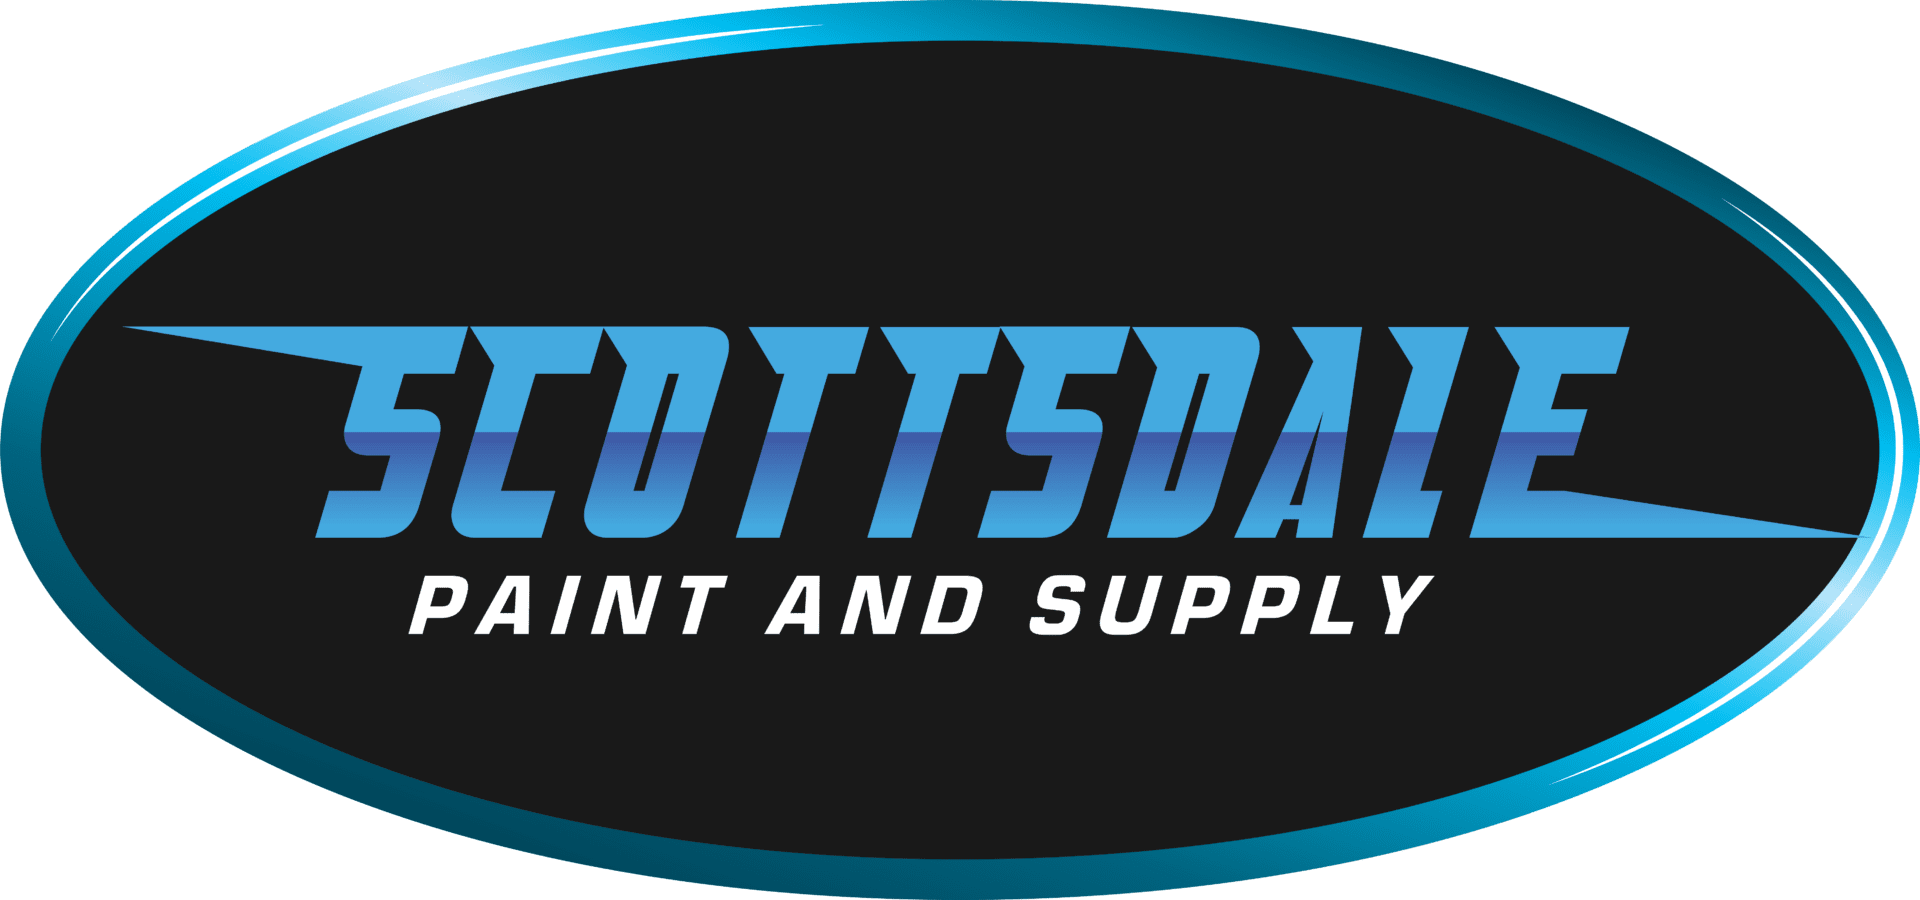 Scottsdale Paint & Supply